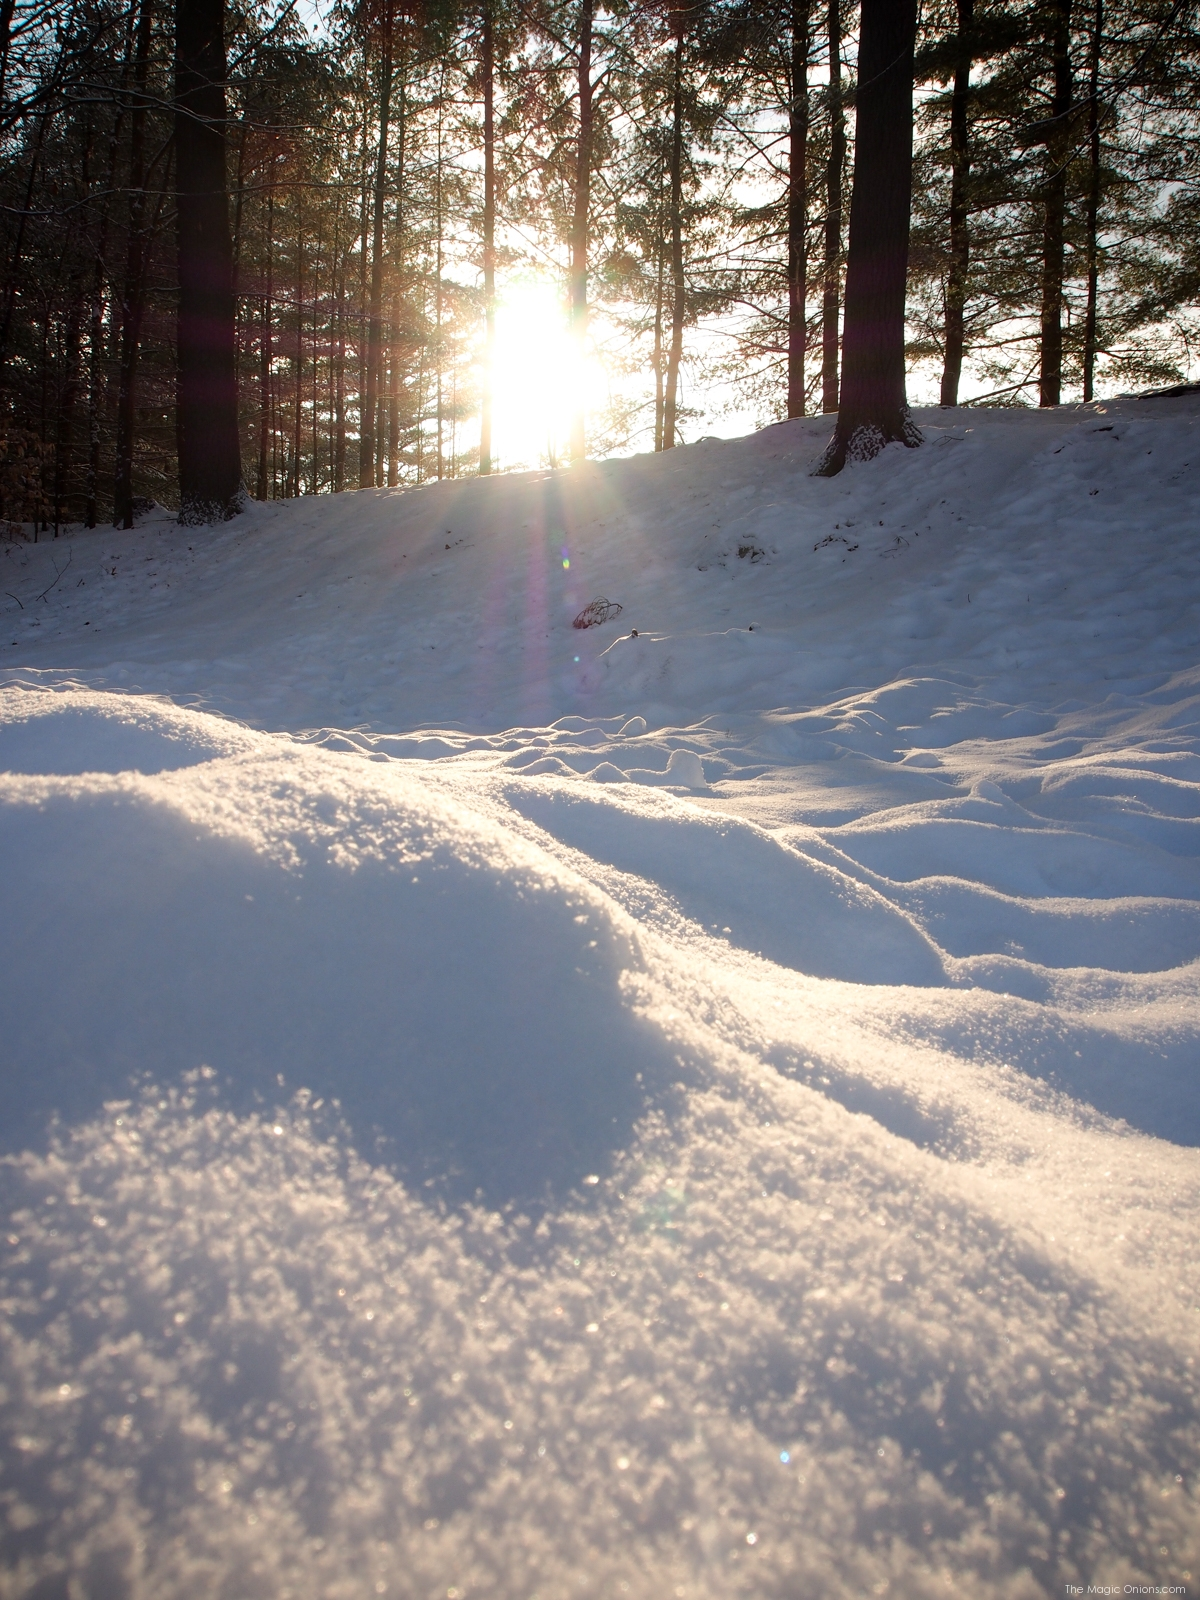 Snow and sunshine in Keene New Hapmshire - www.theMagicOnions.com